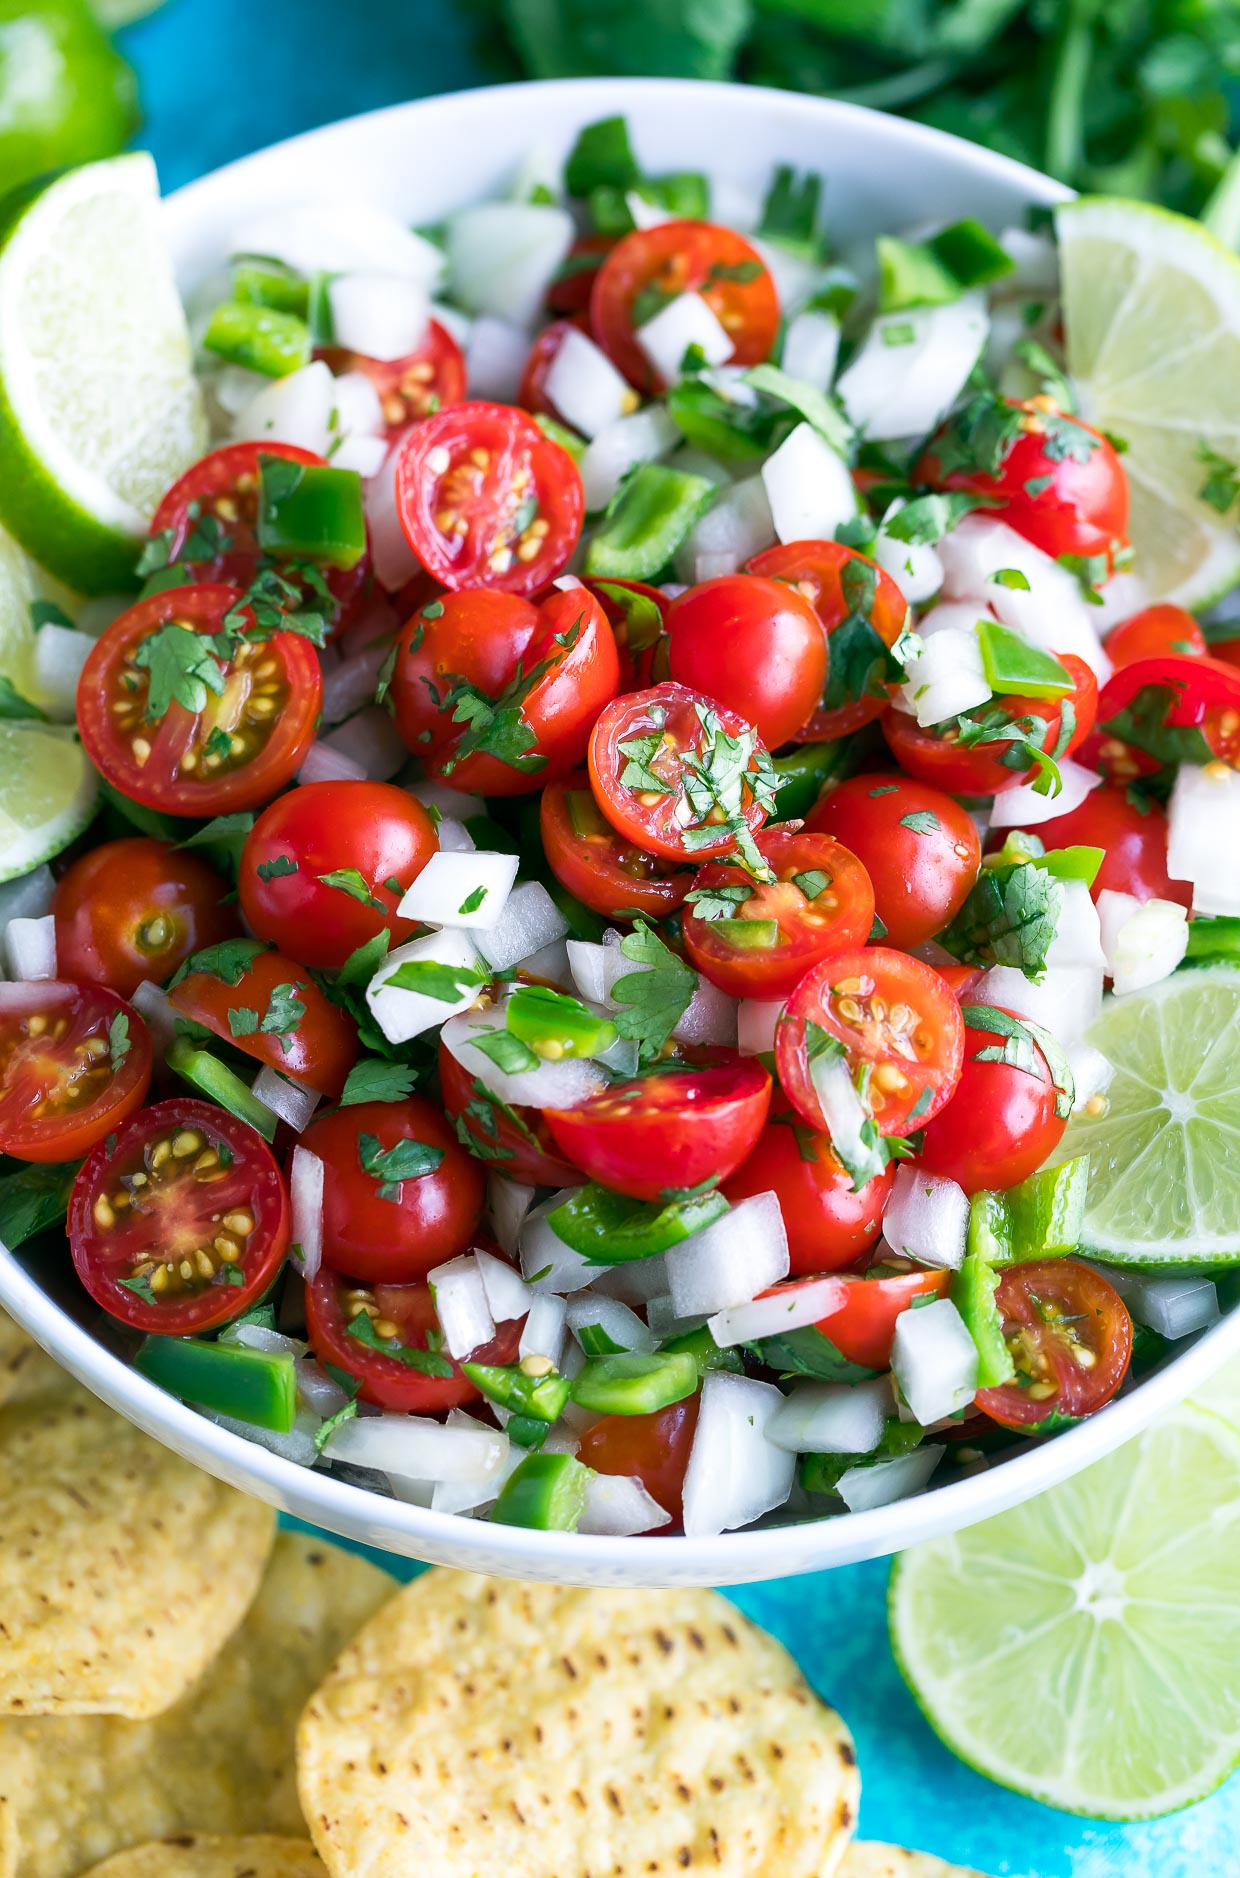 10 Tasty Cherry Tomato Recipes: Healthy Cherry Tomato Pico de Gallo